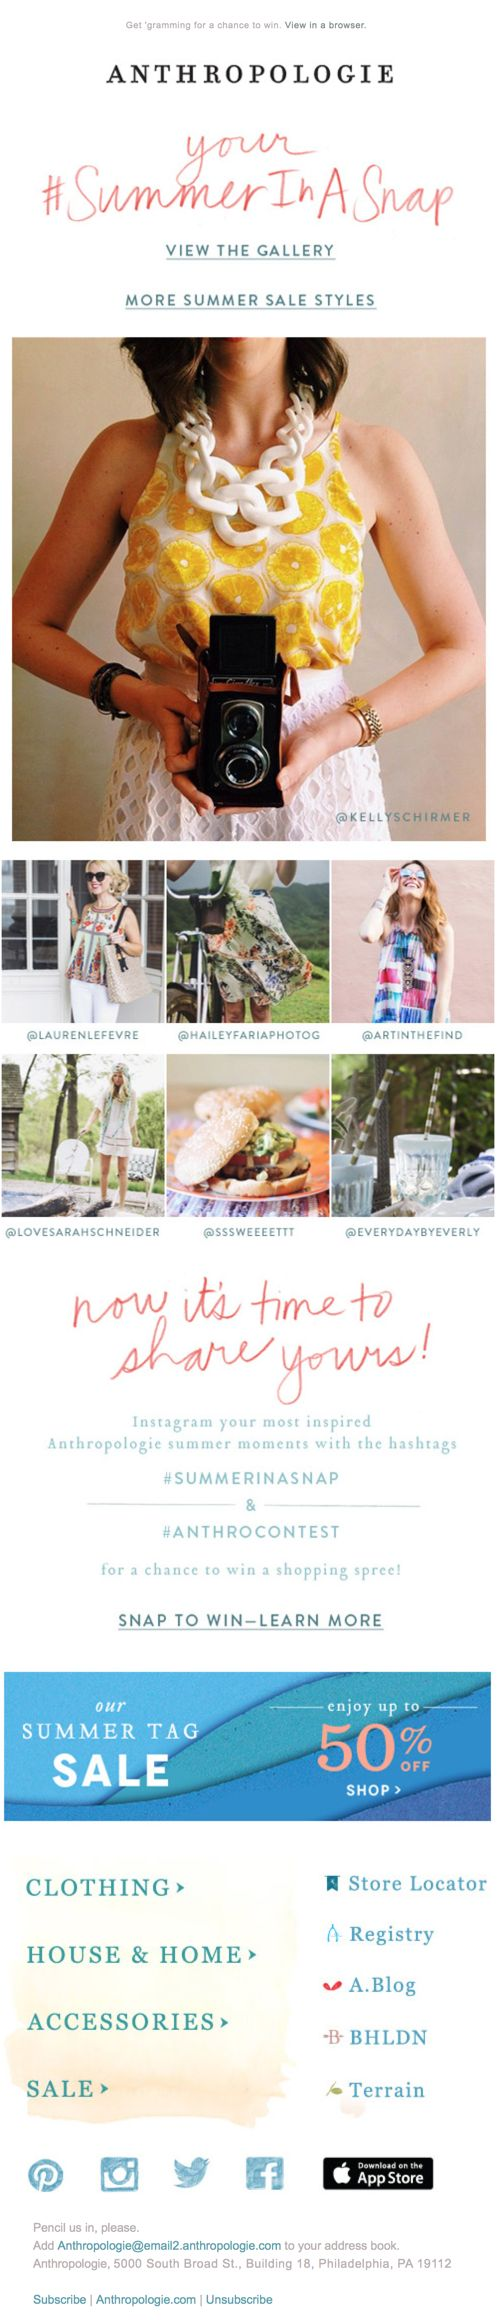 Best 25 Anthropologie instagram ideas on Pinterest